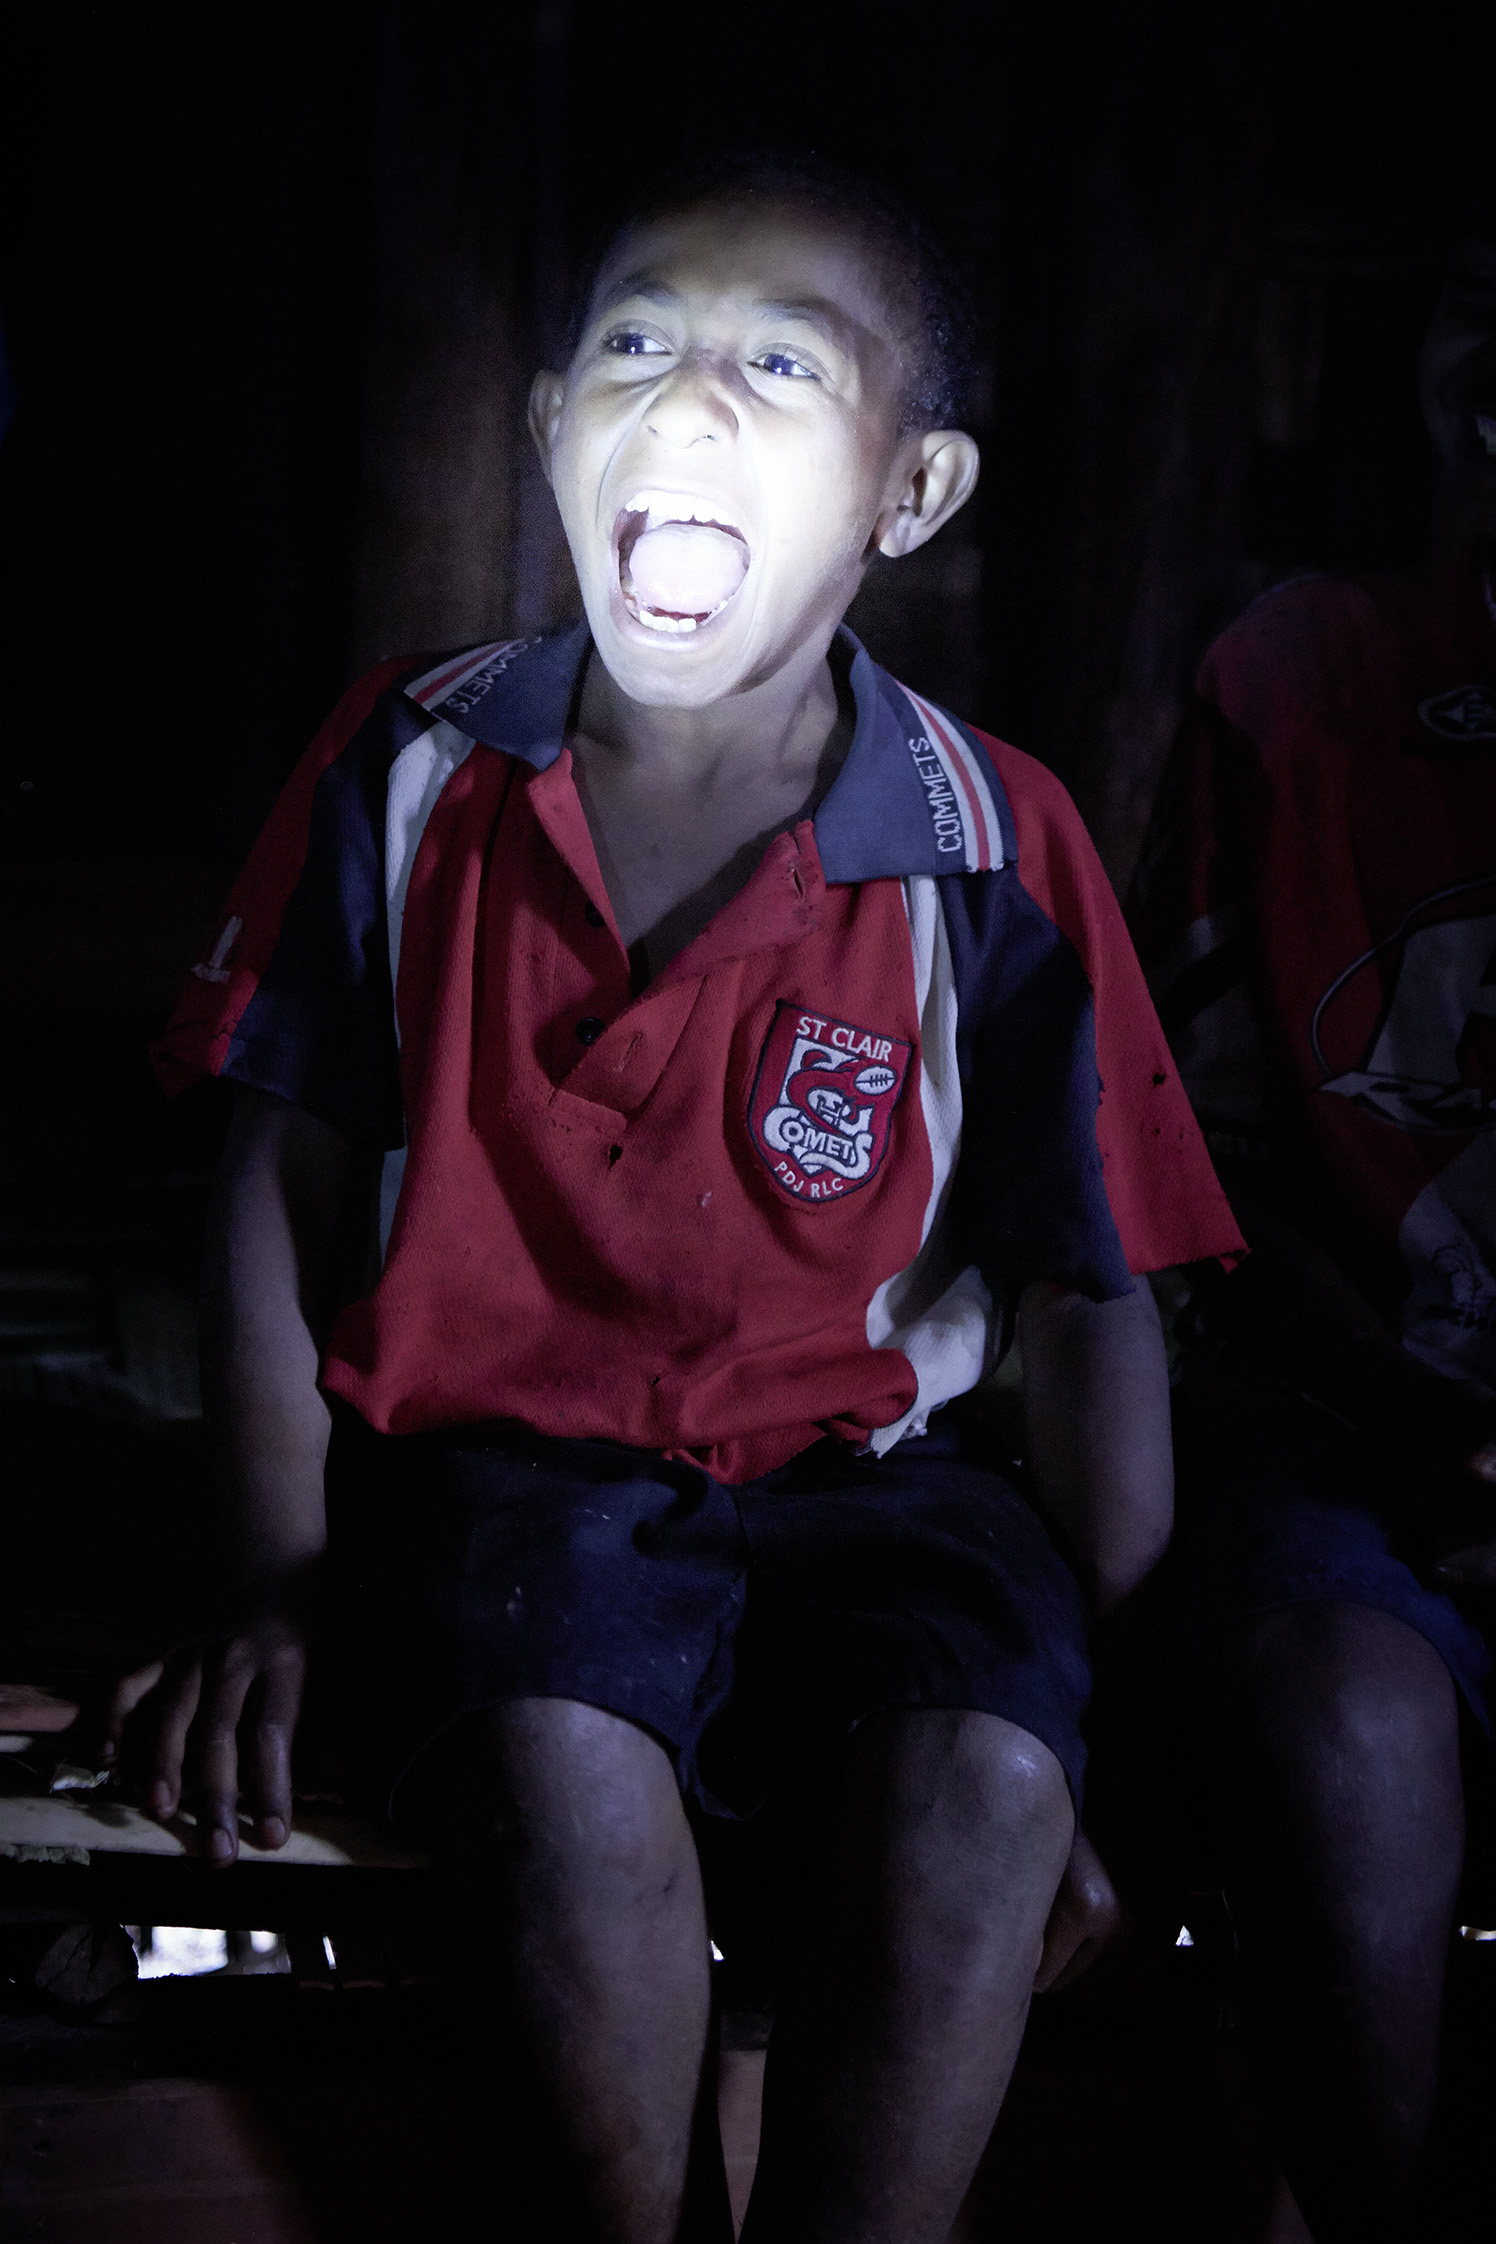 At night the children are told the ghost stories. That is when they start believing in that thing.